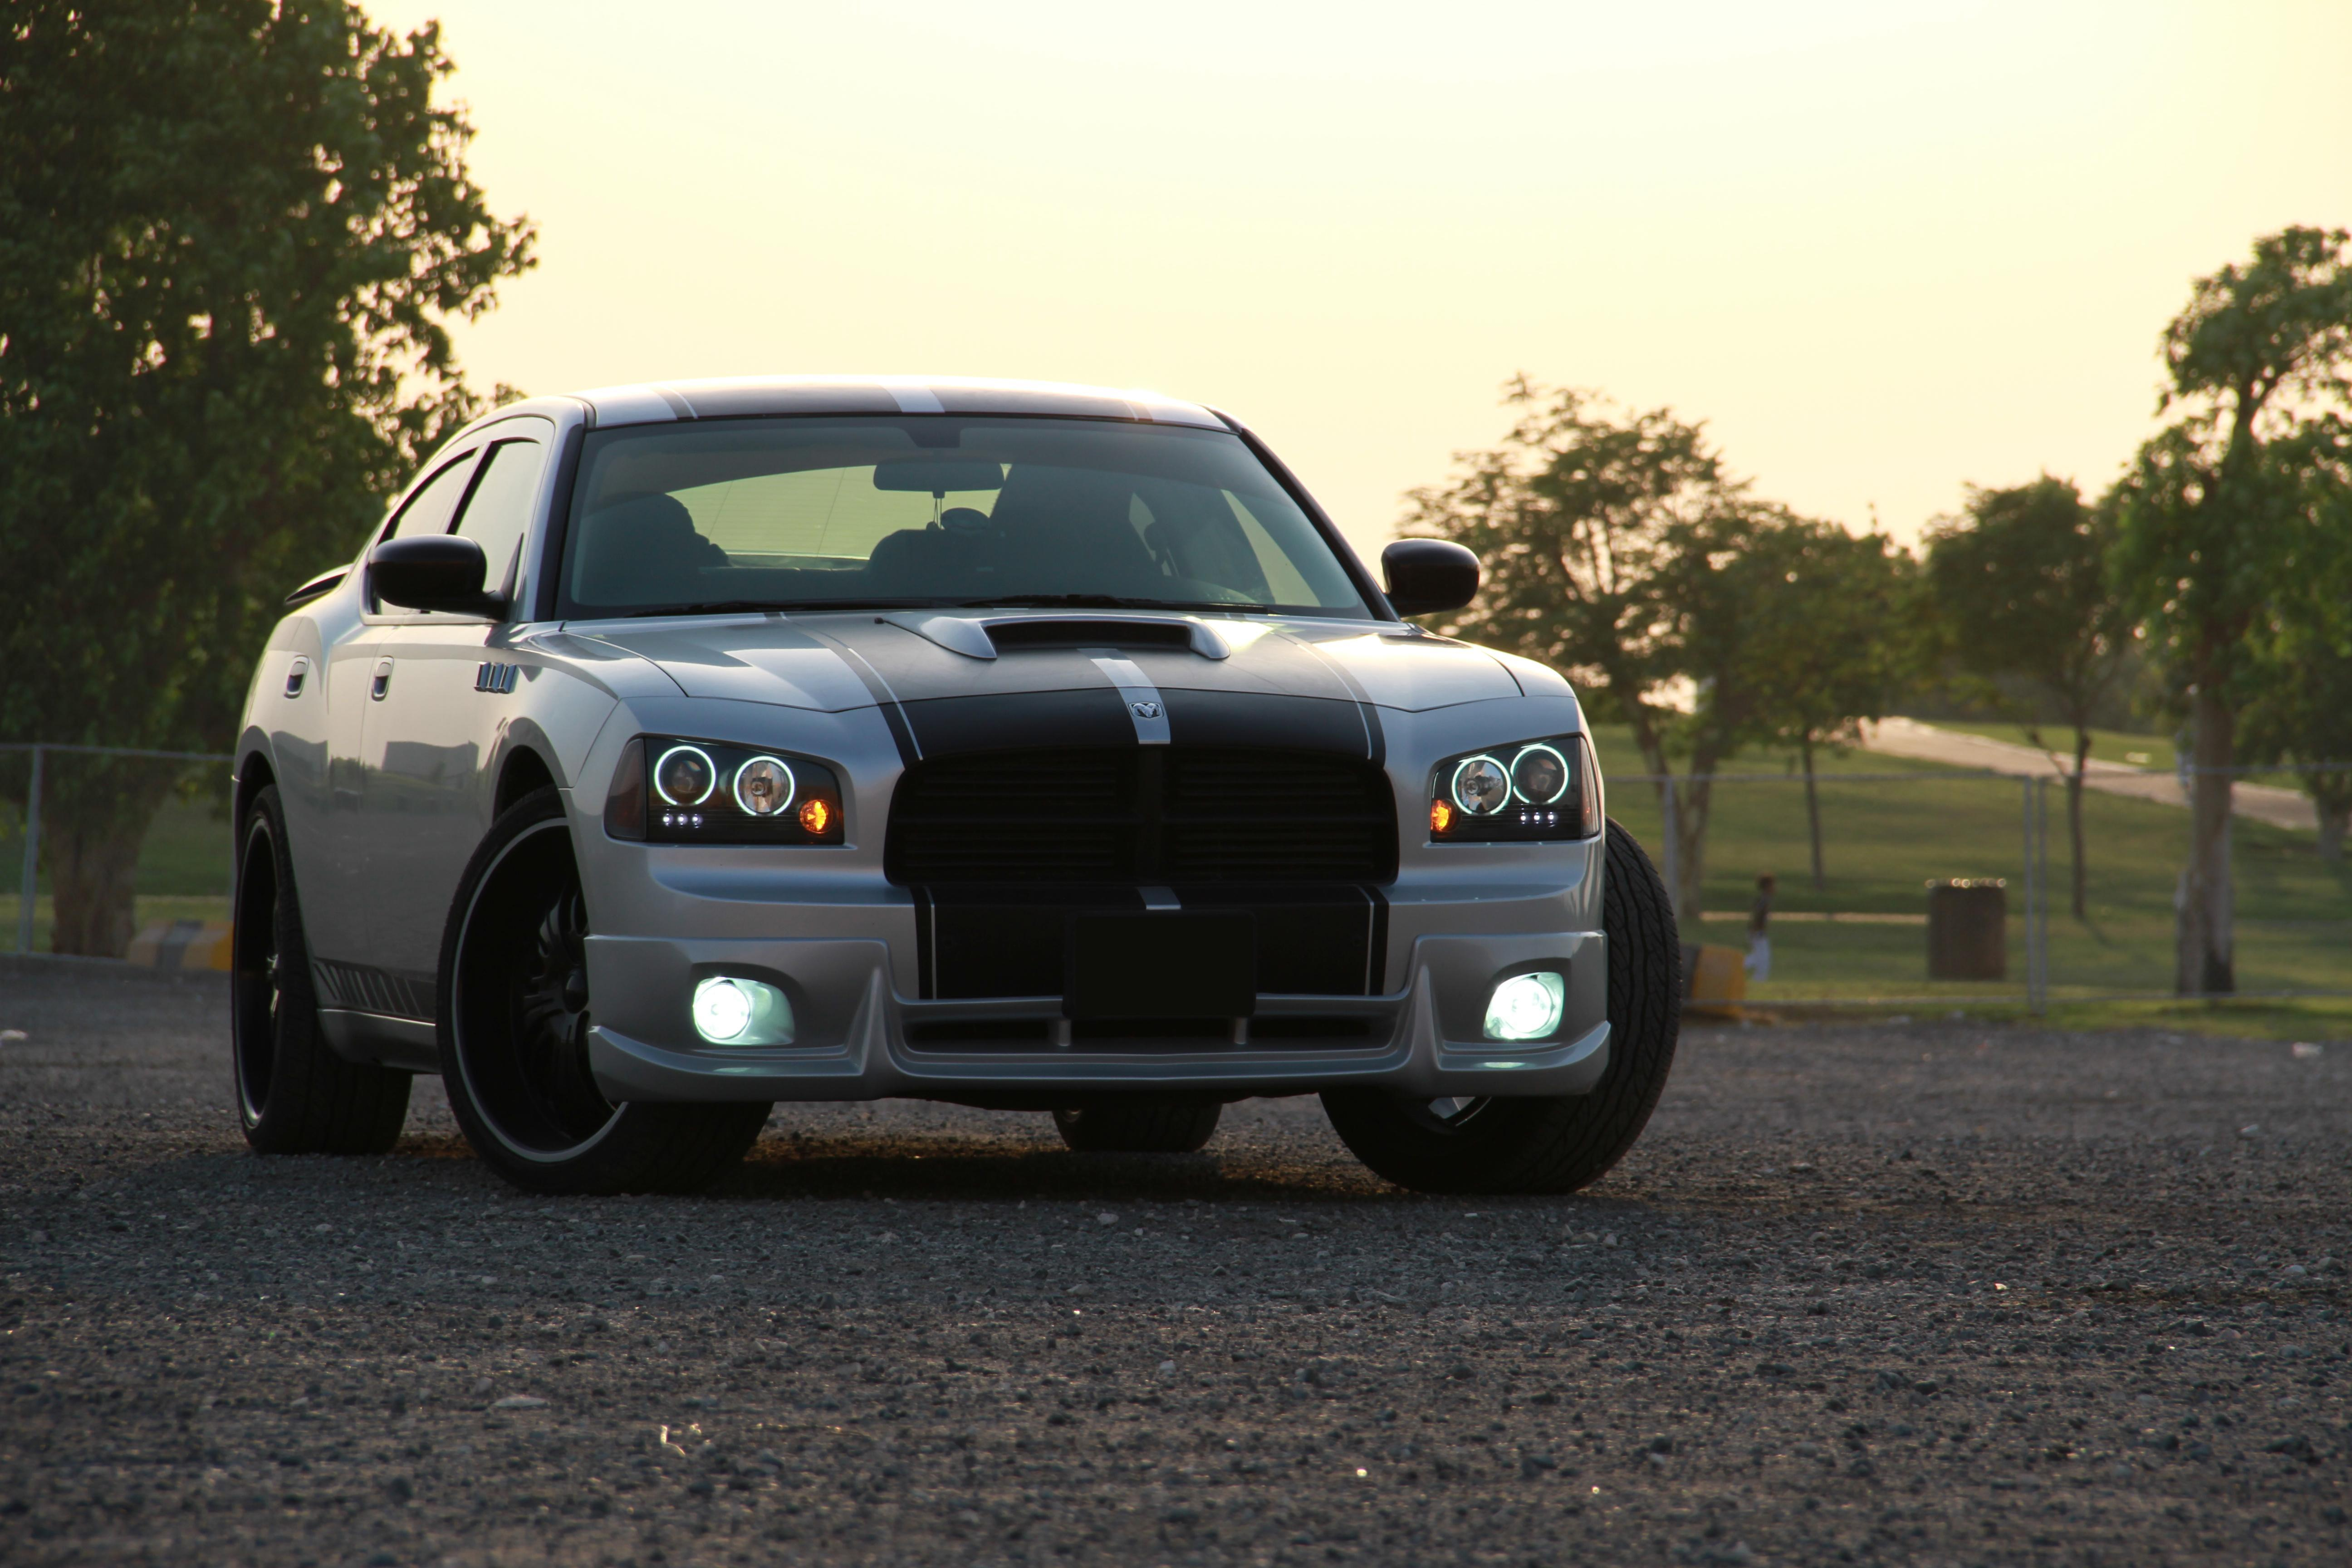 ali_aia 2009 Dodge Charger